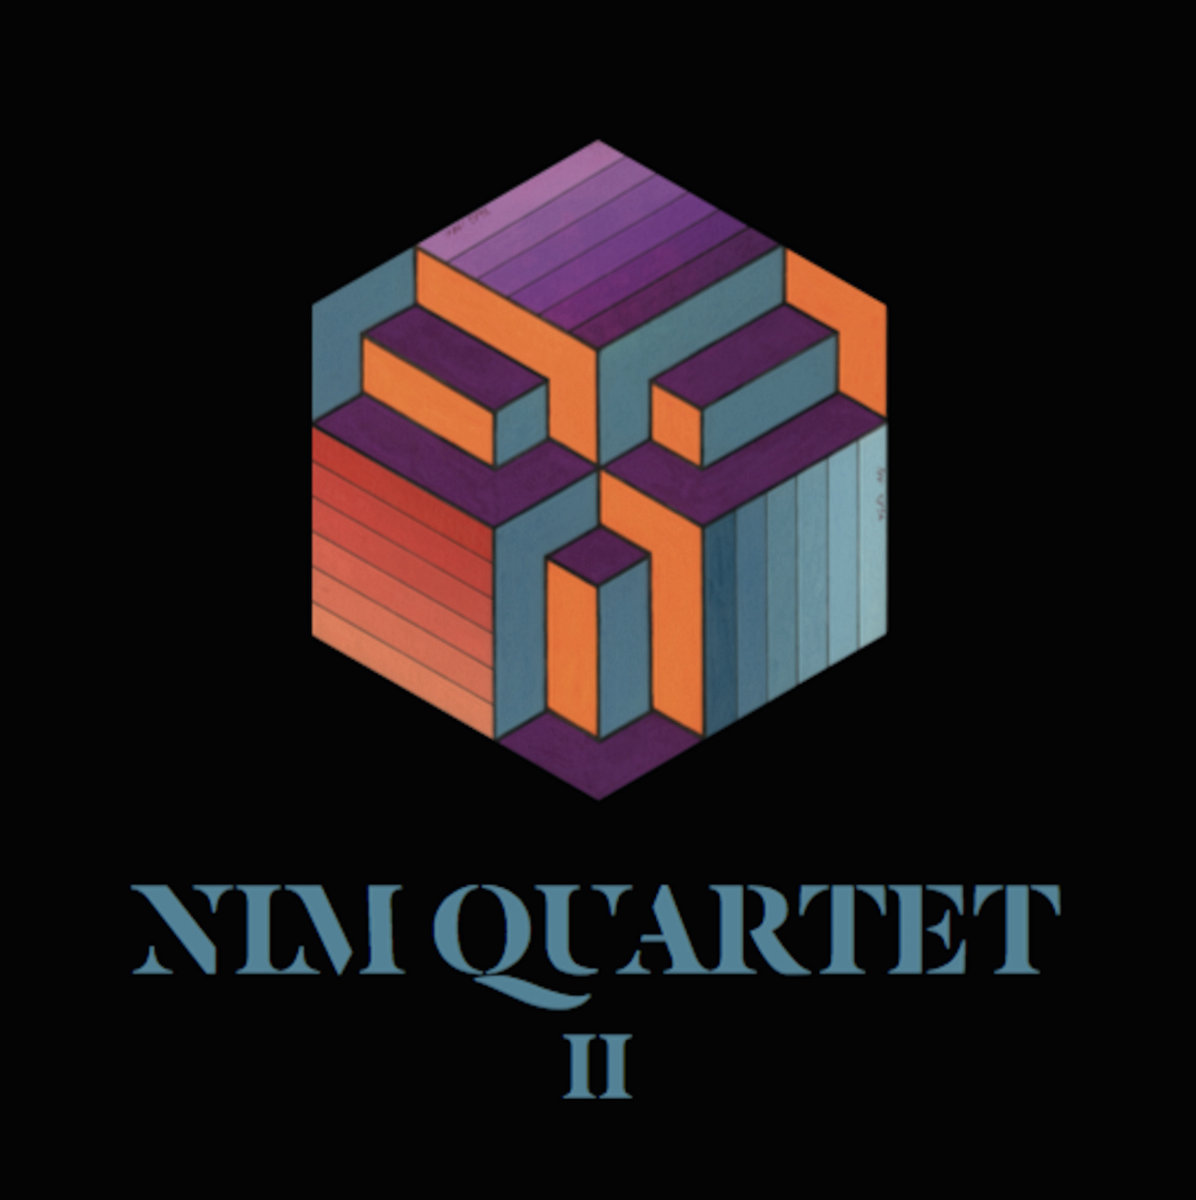 NIM QUARTET - Nim Quartet II cover